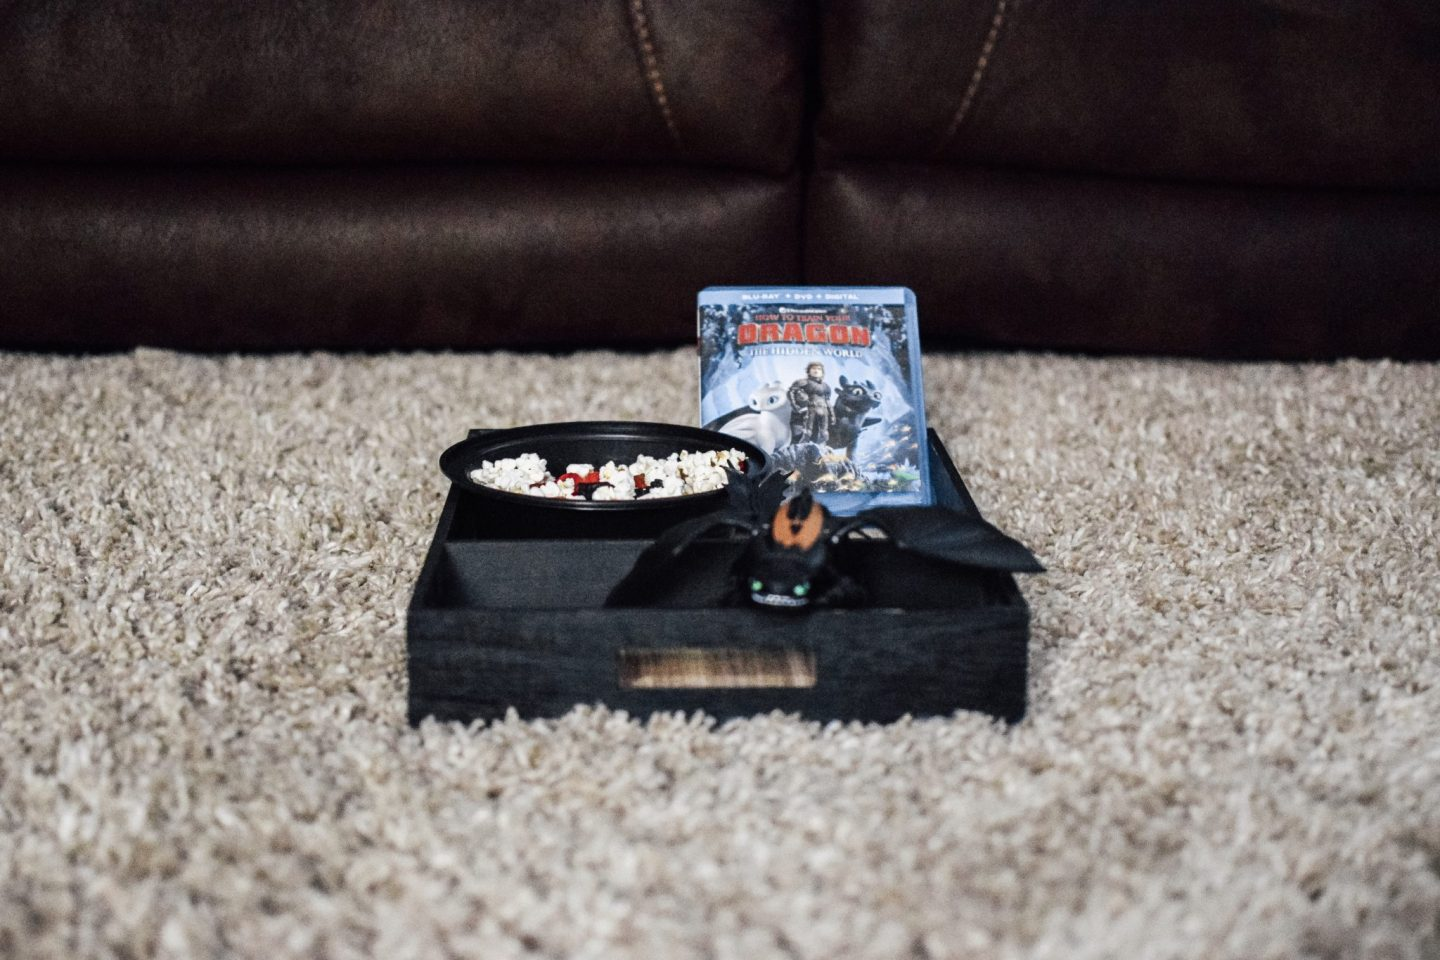 Simple at home movie caddy